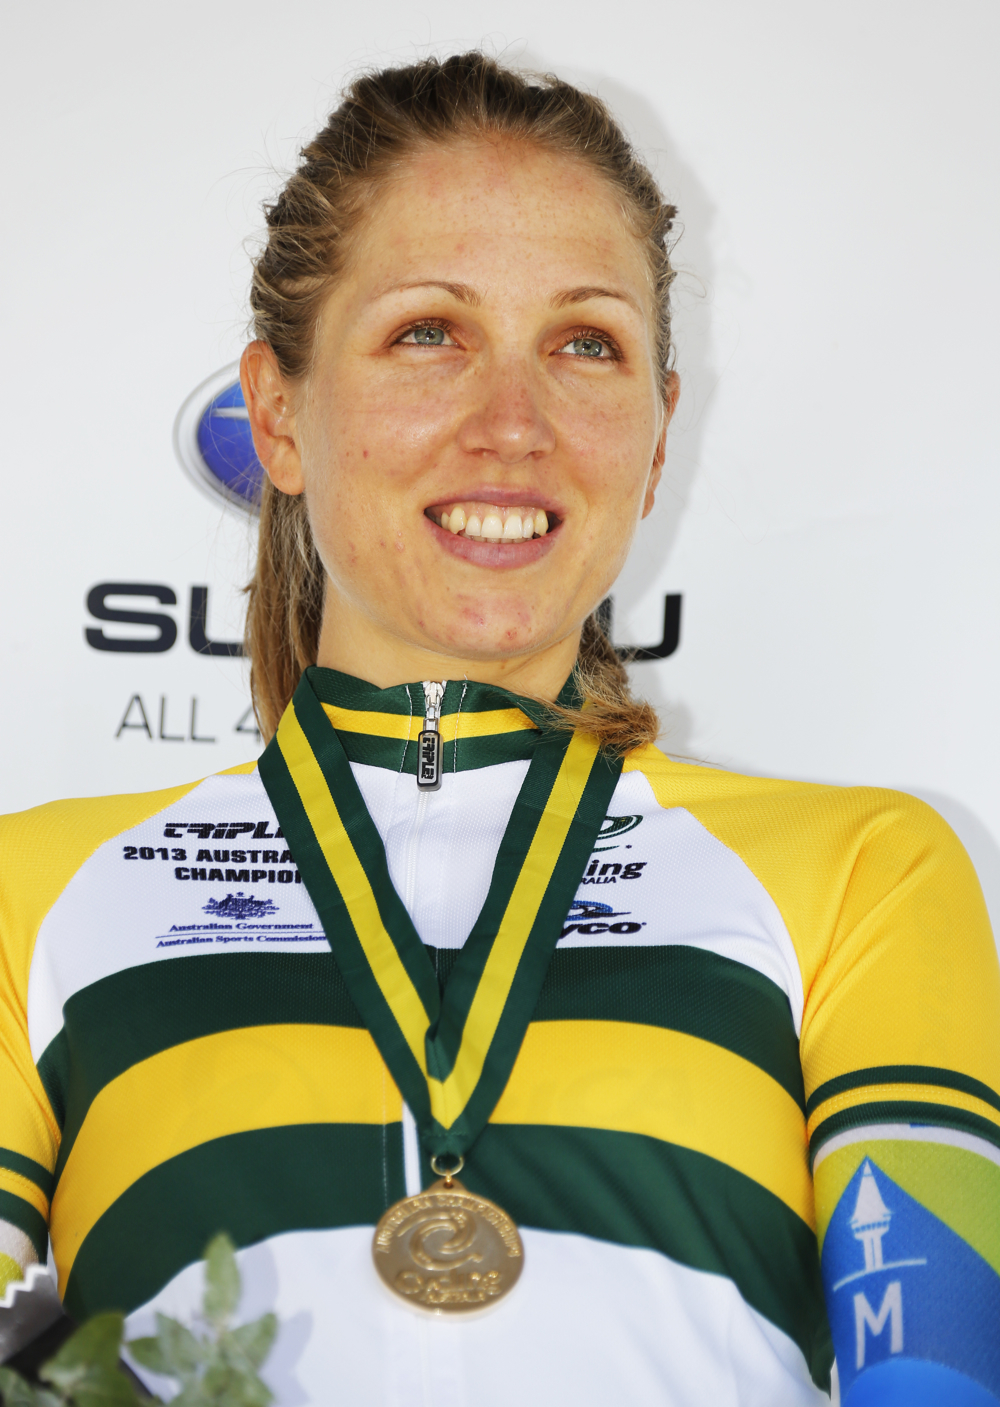 Shara Gillow, Gold, Womens Time Trial